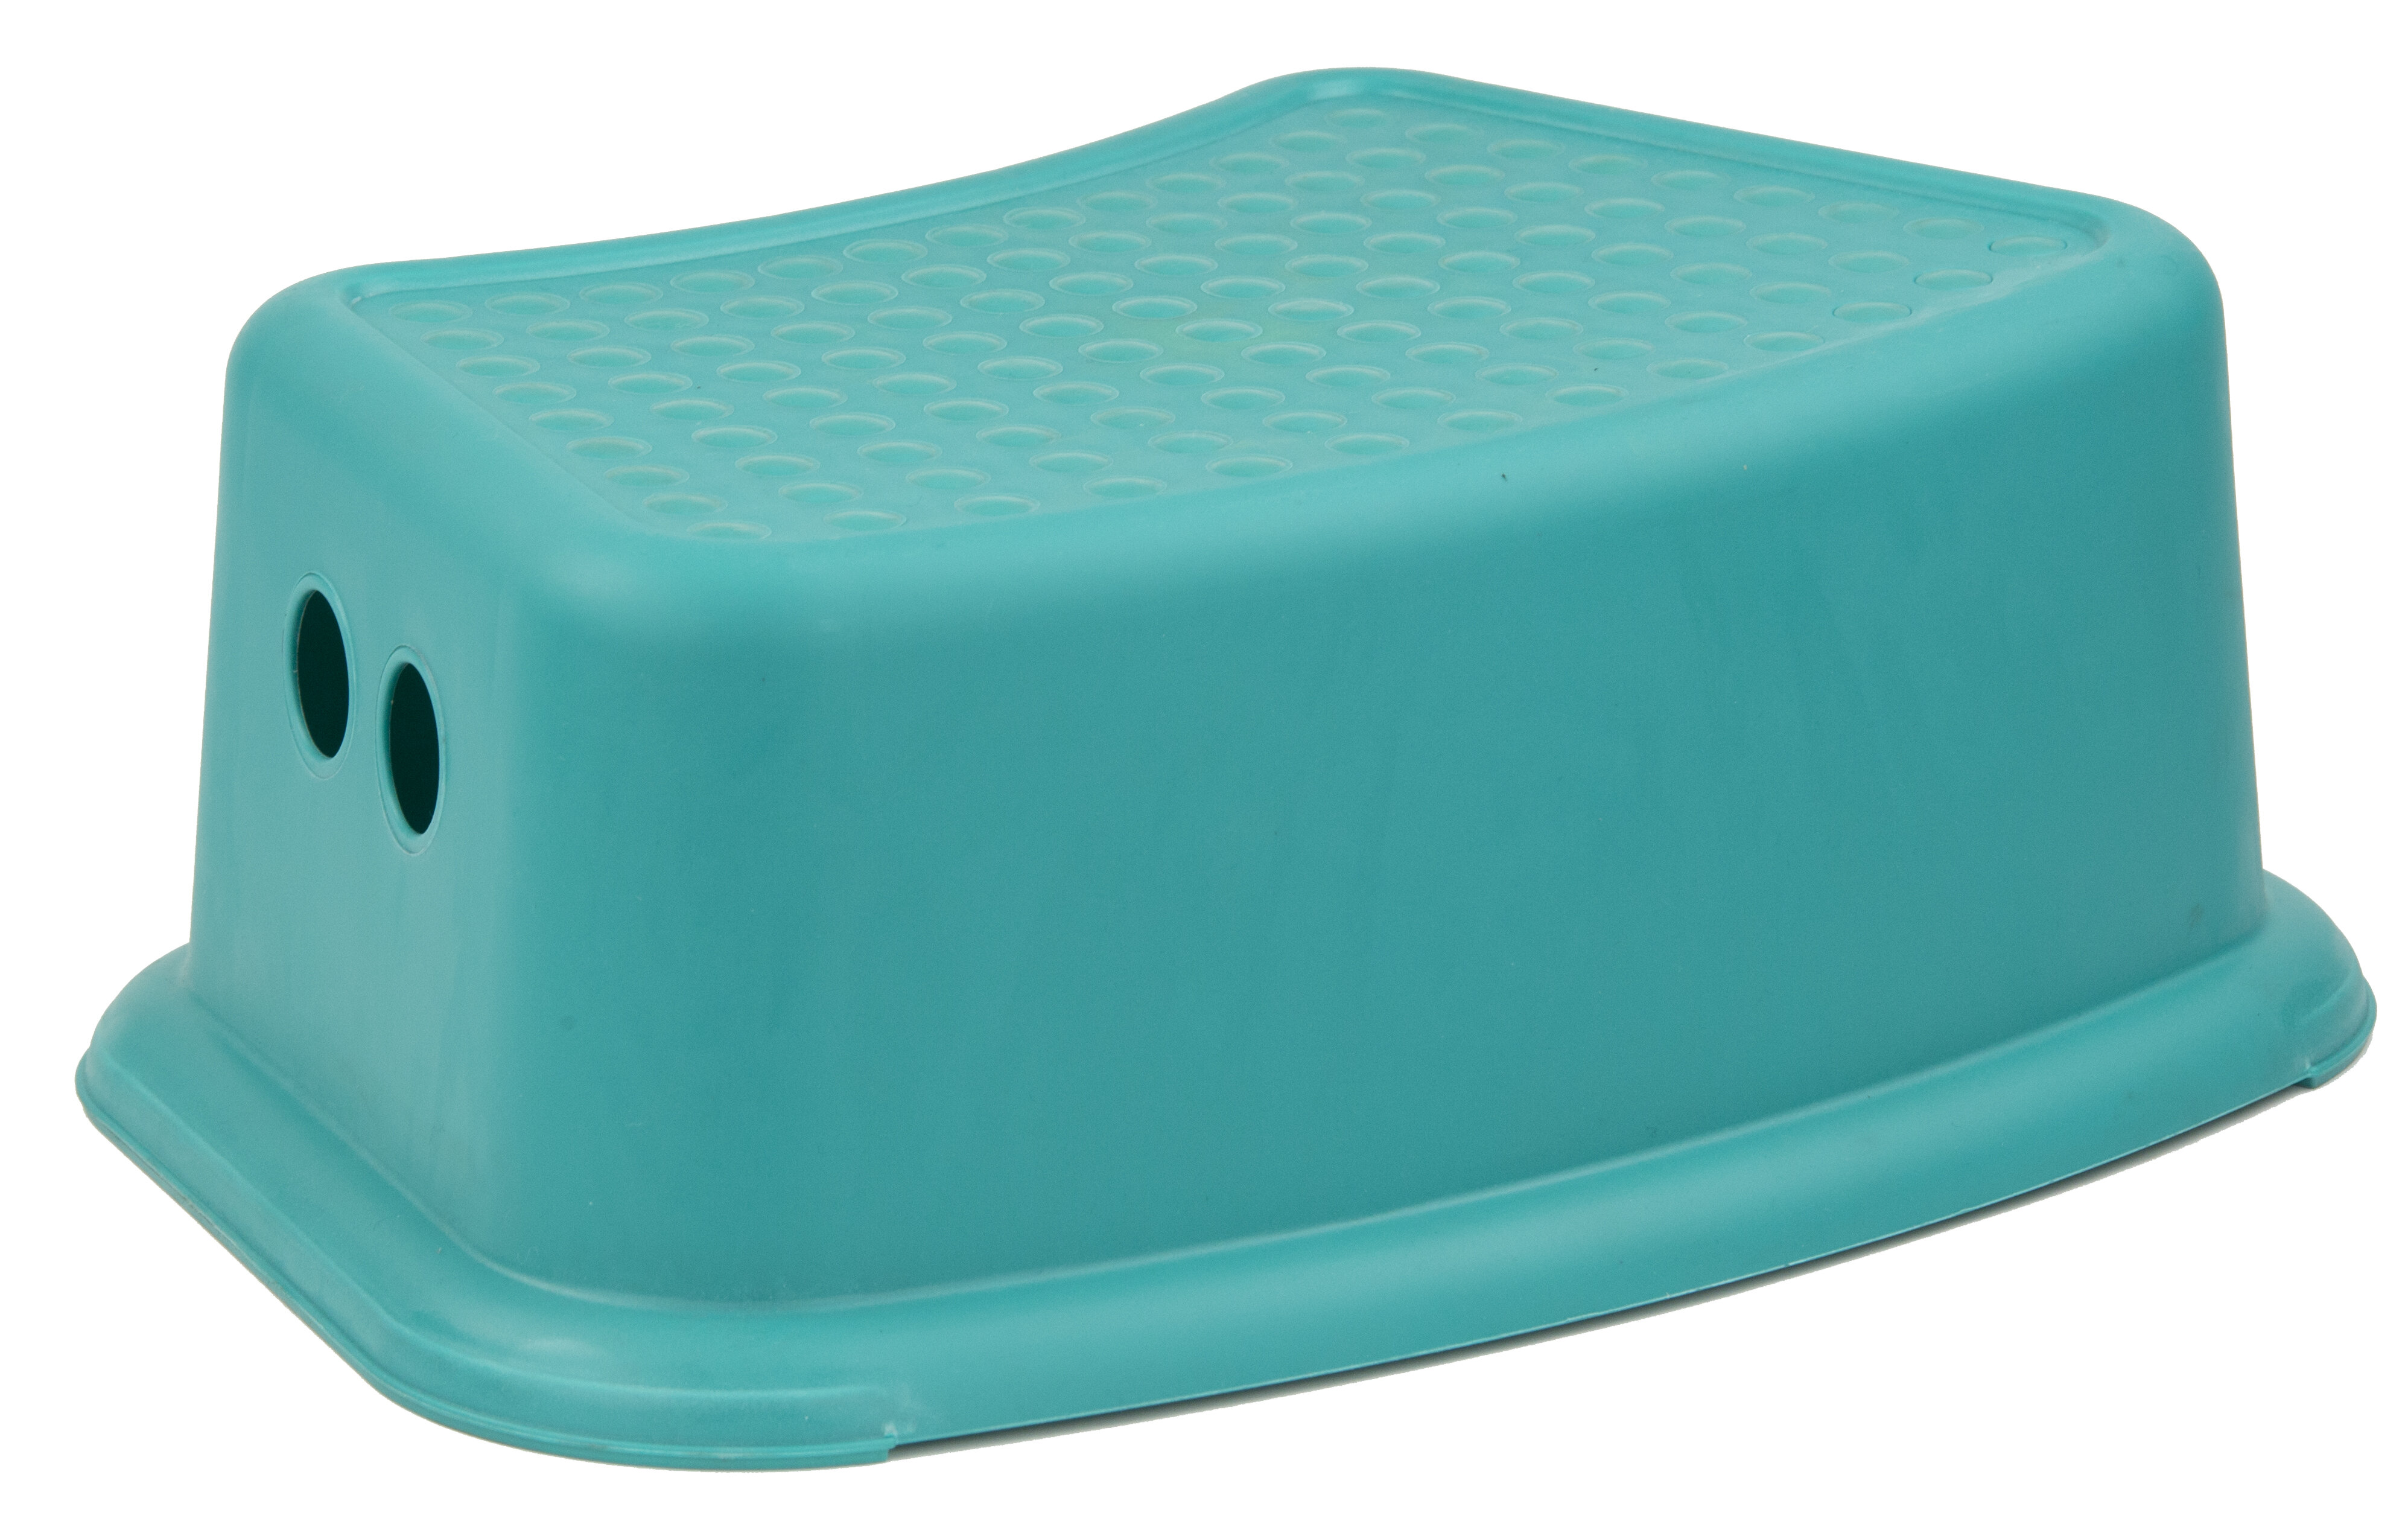 Home Basics Step Stool with Rubber Top & Reviews | Wayfair